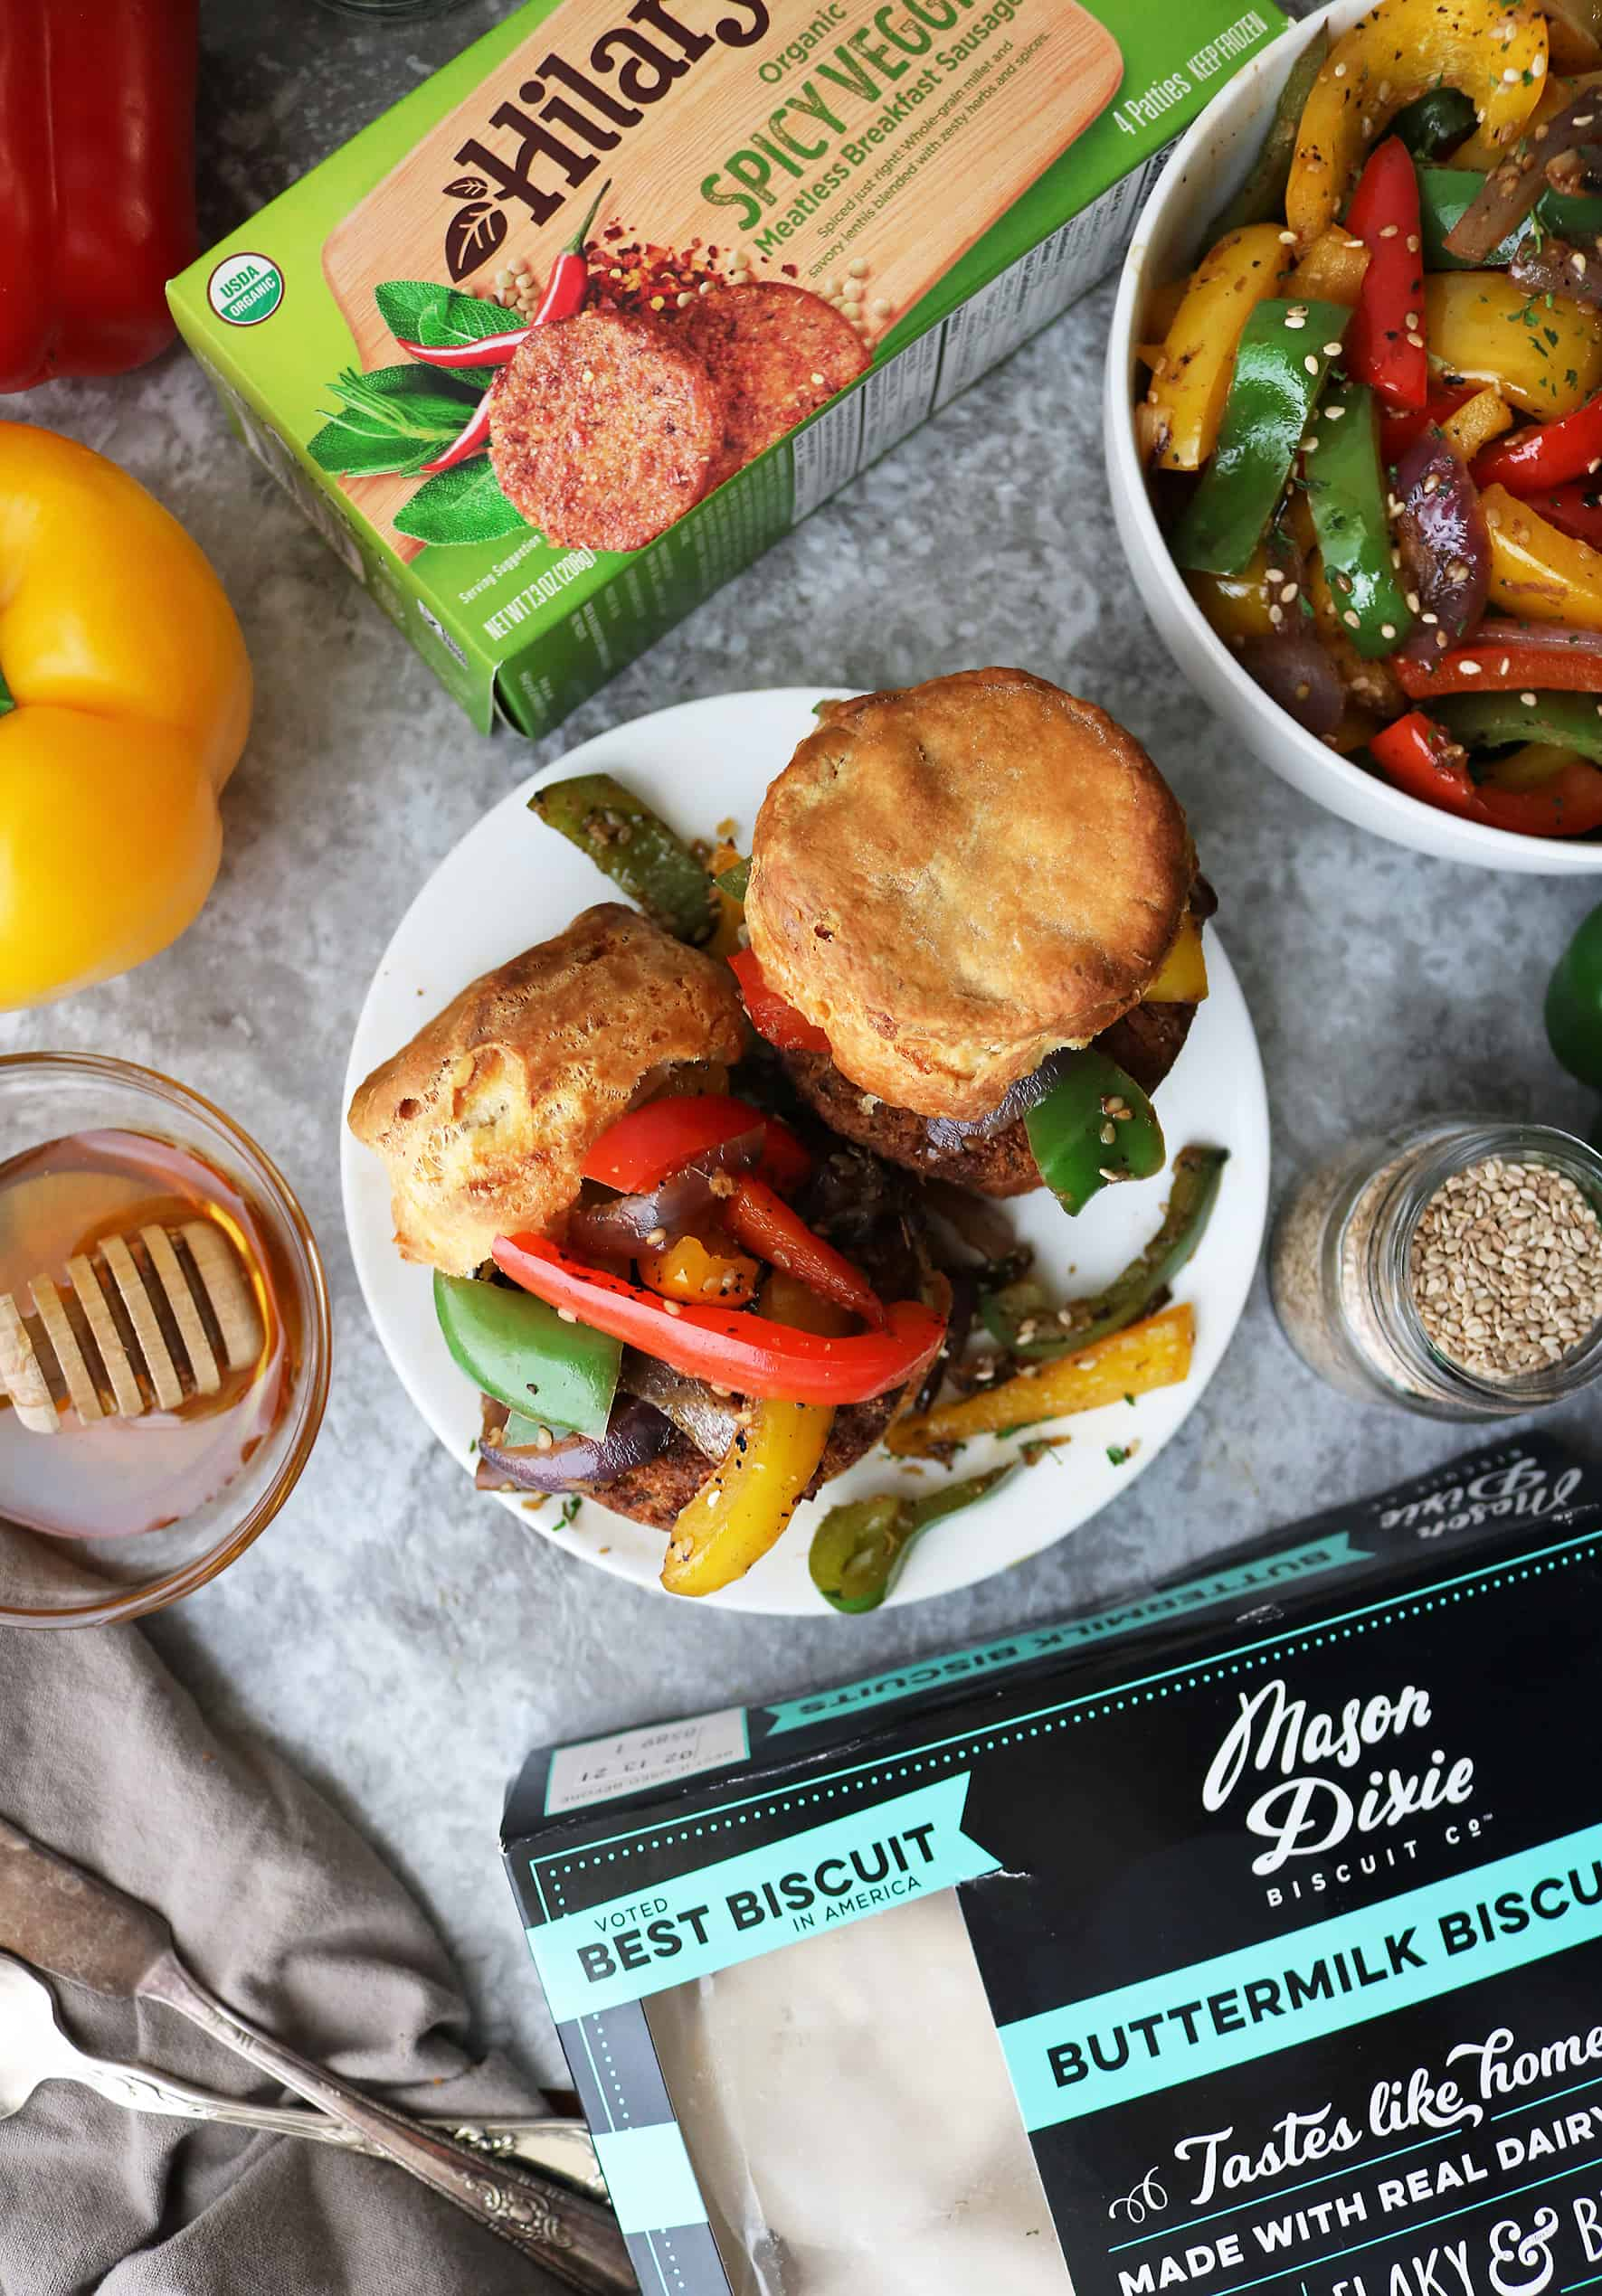 15 Minute Honey Ginger Sesame Veggie Sausage Biscuits. - breakfast for dinner anyone?